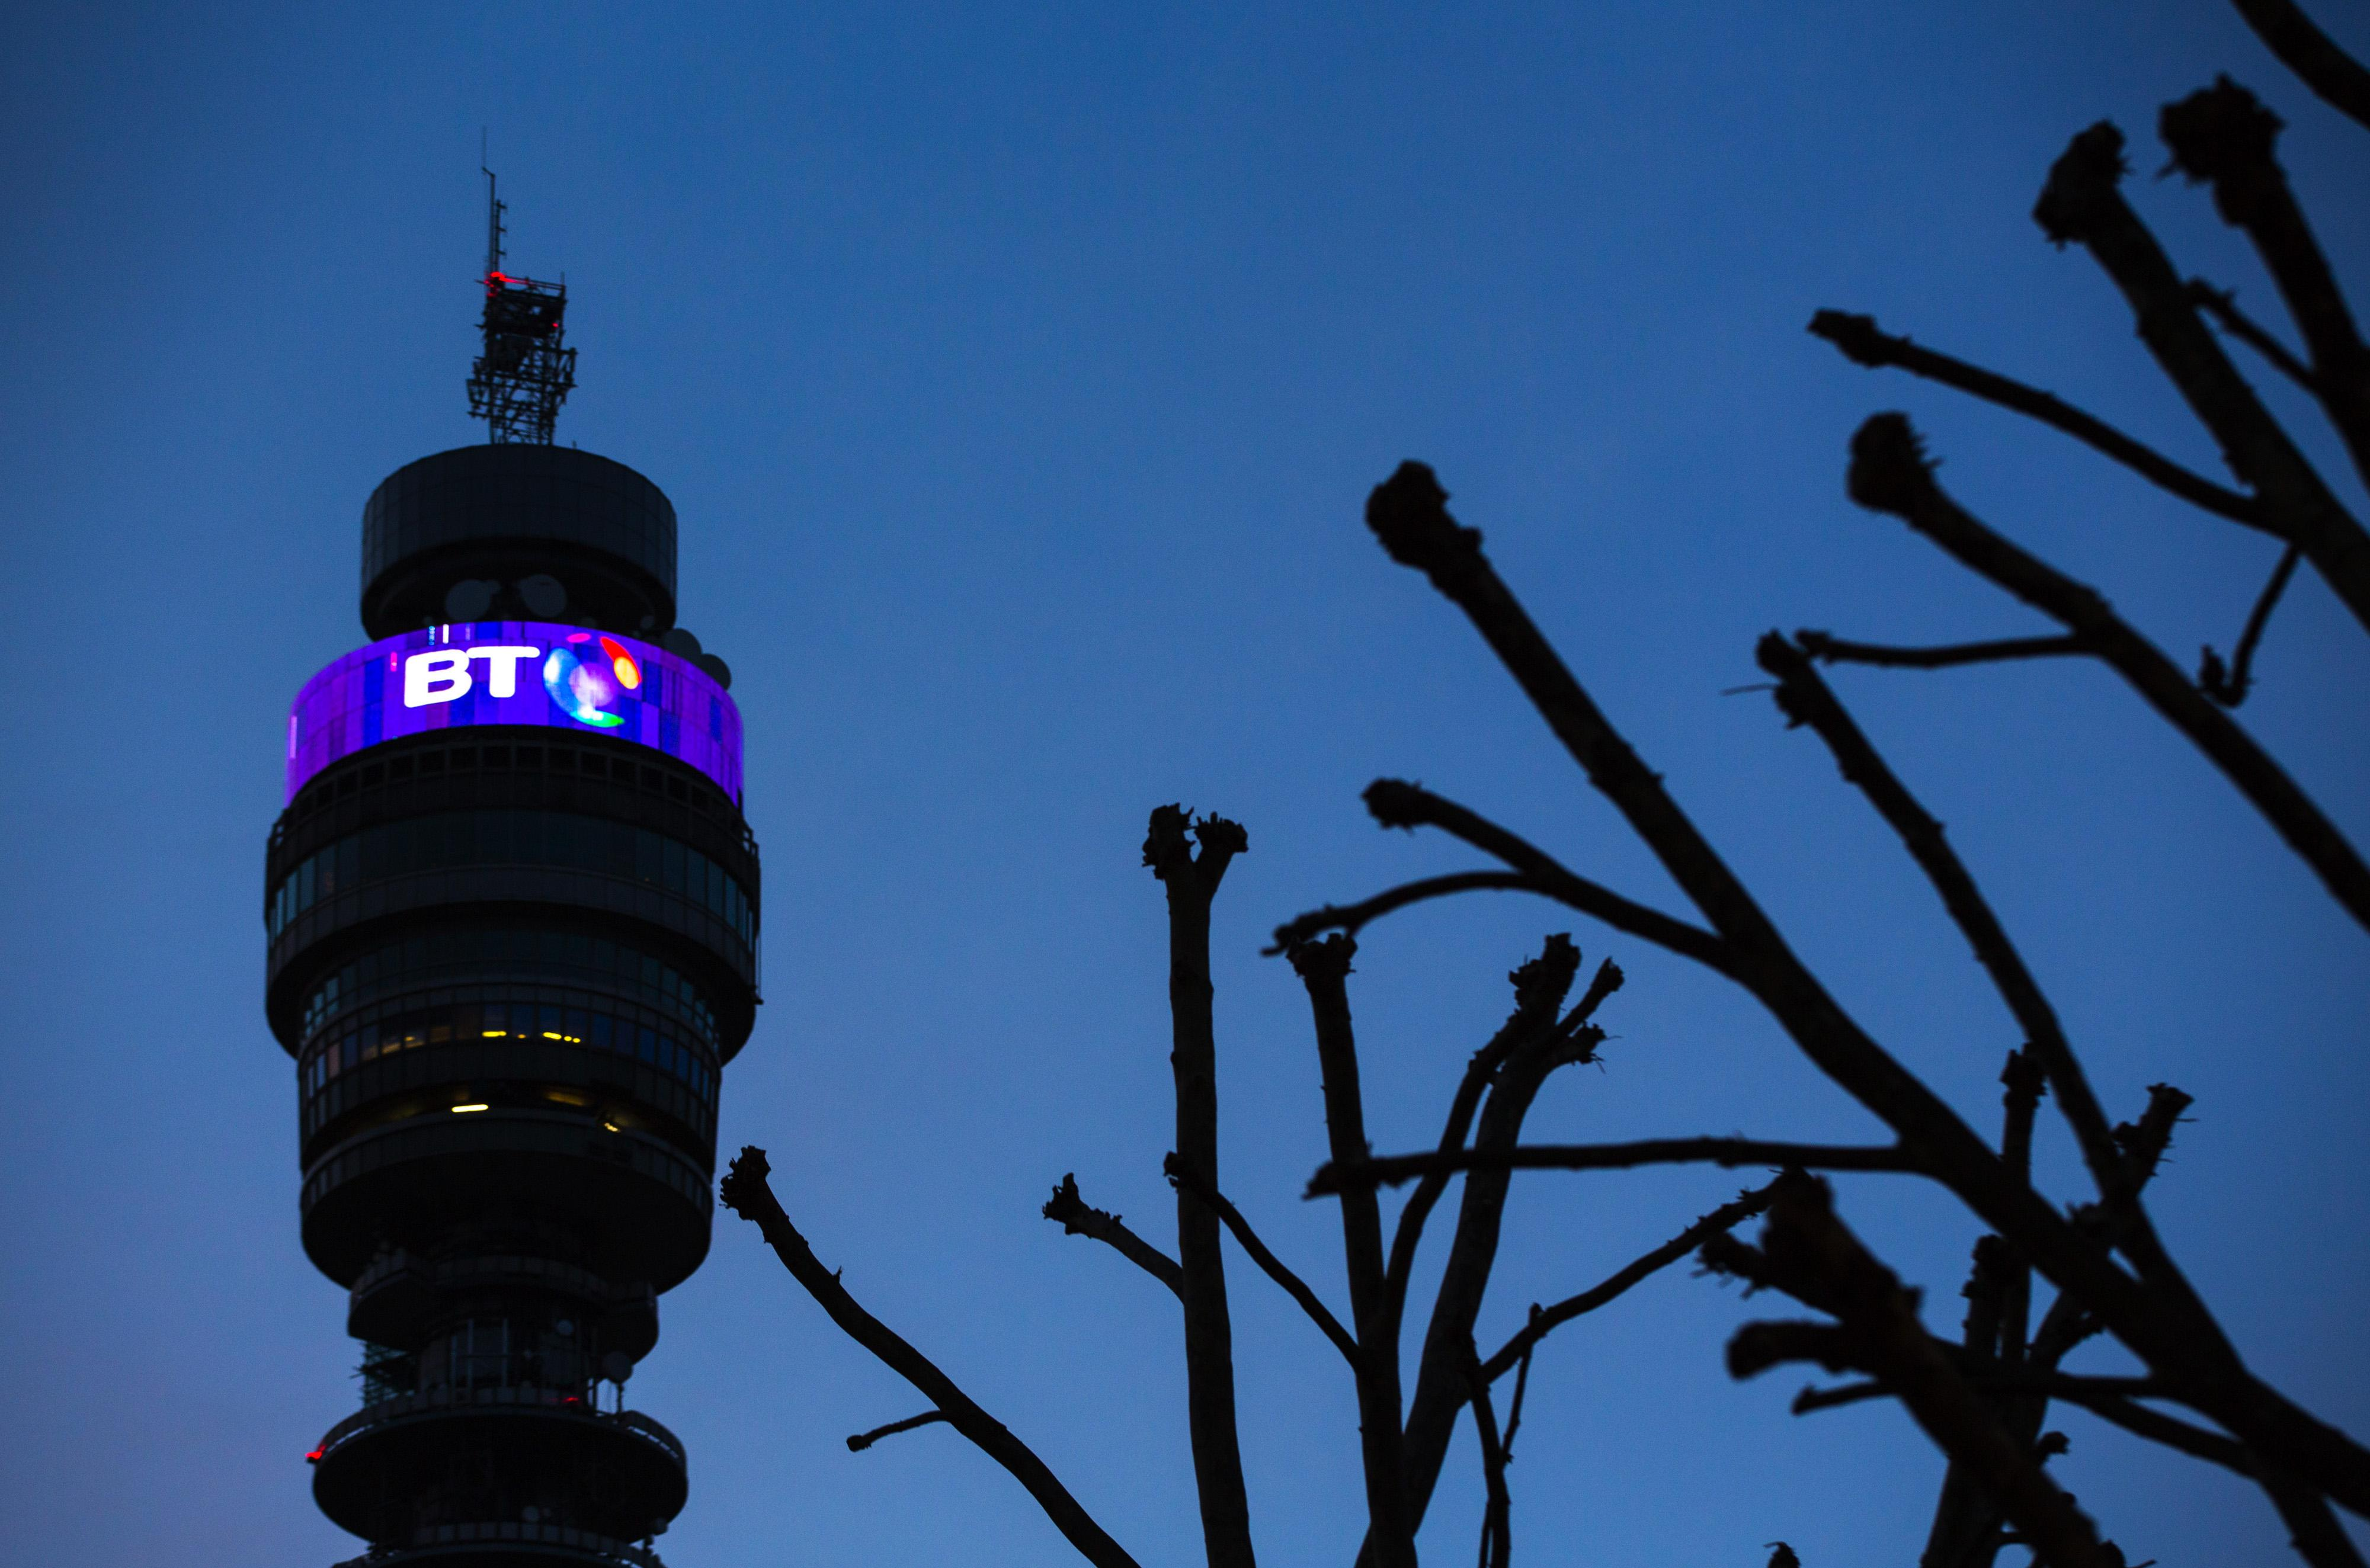 BT (LON:BT) share price: 3 things we learnt from its Q1 results   IG UK